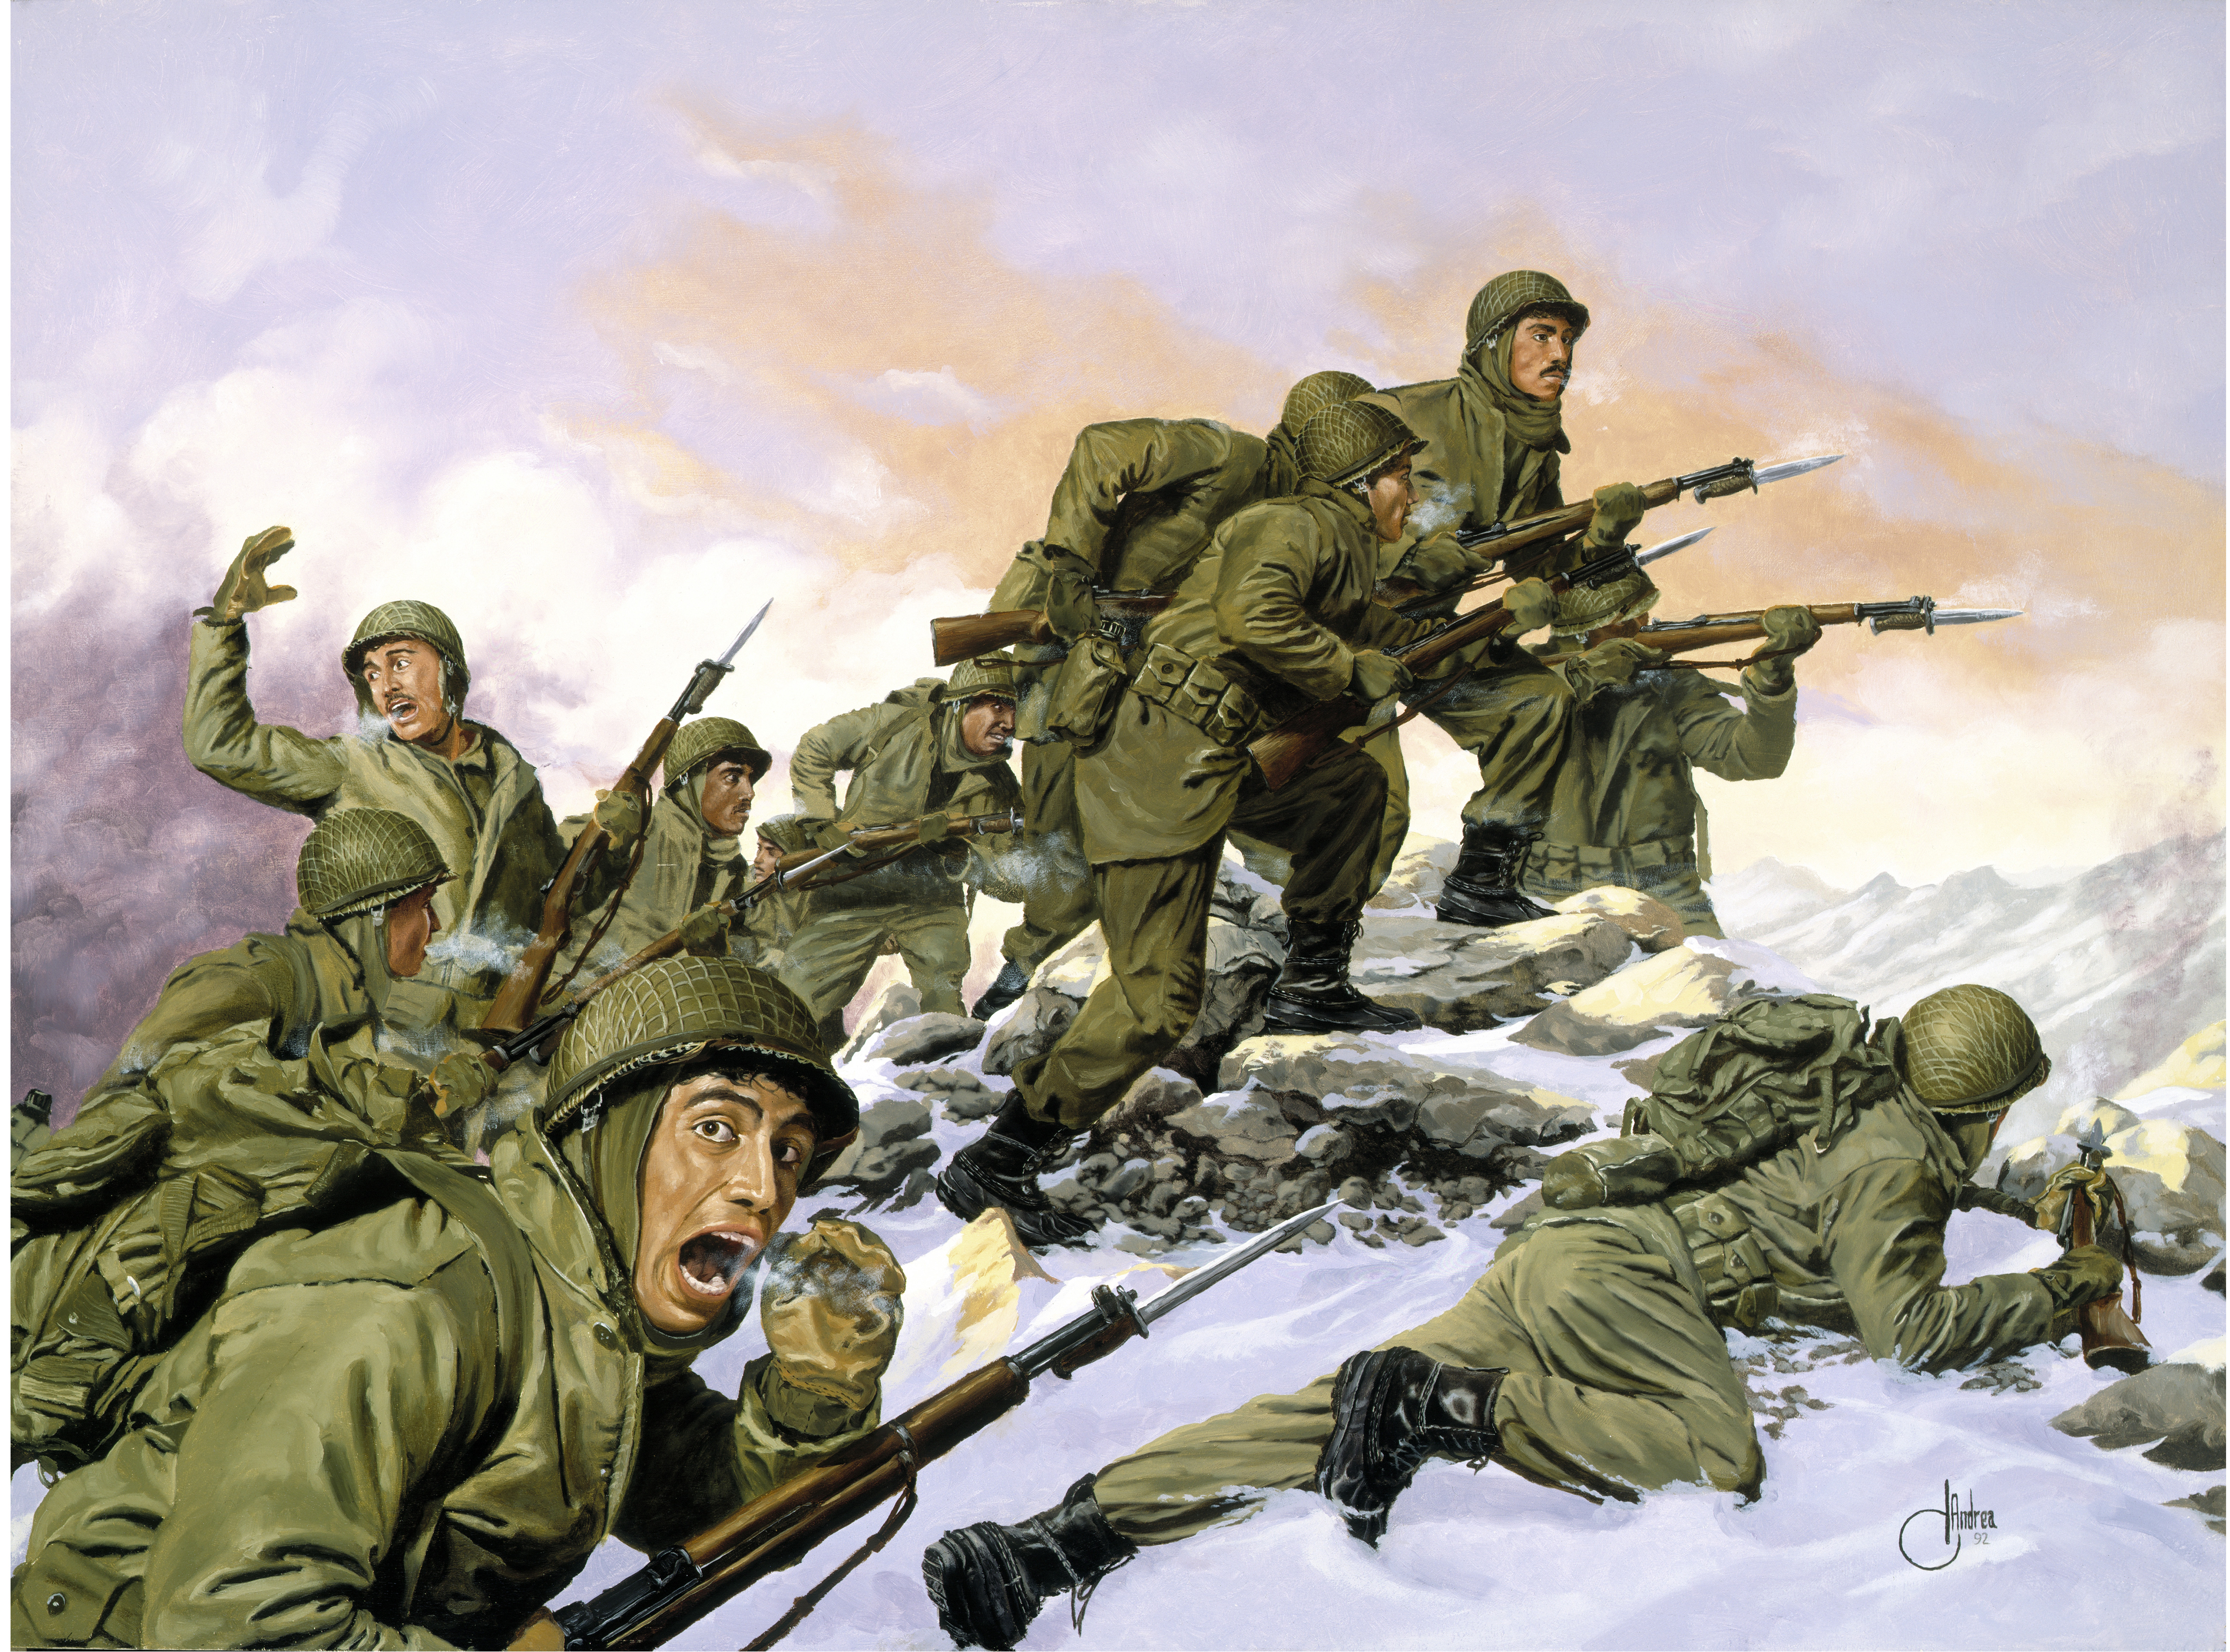 the tragedies and horrors of world war ii